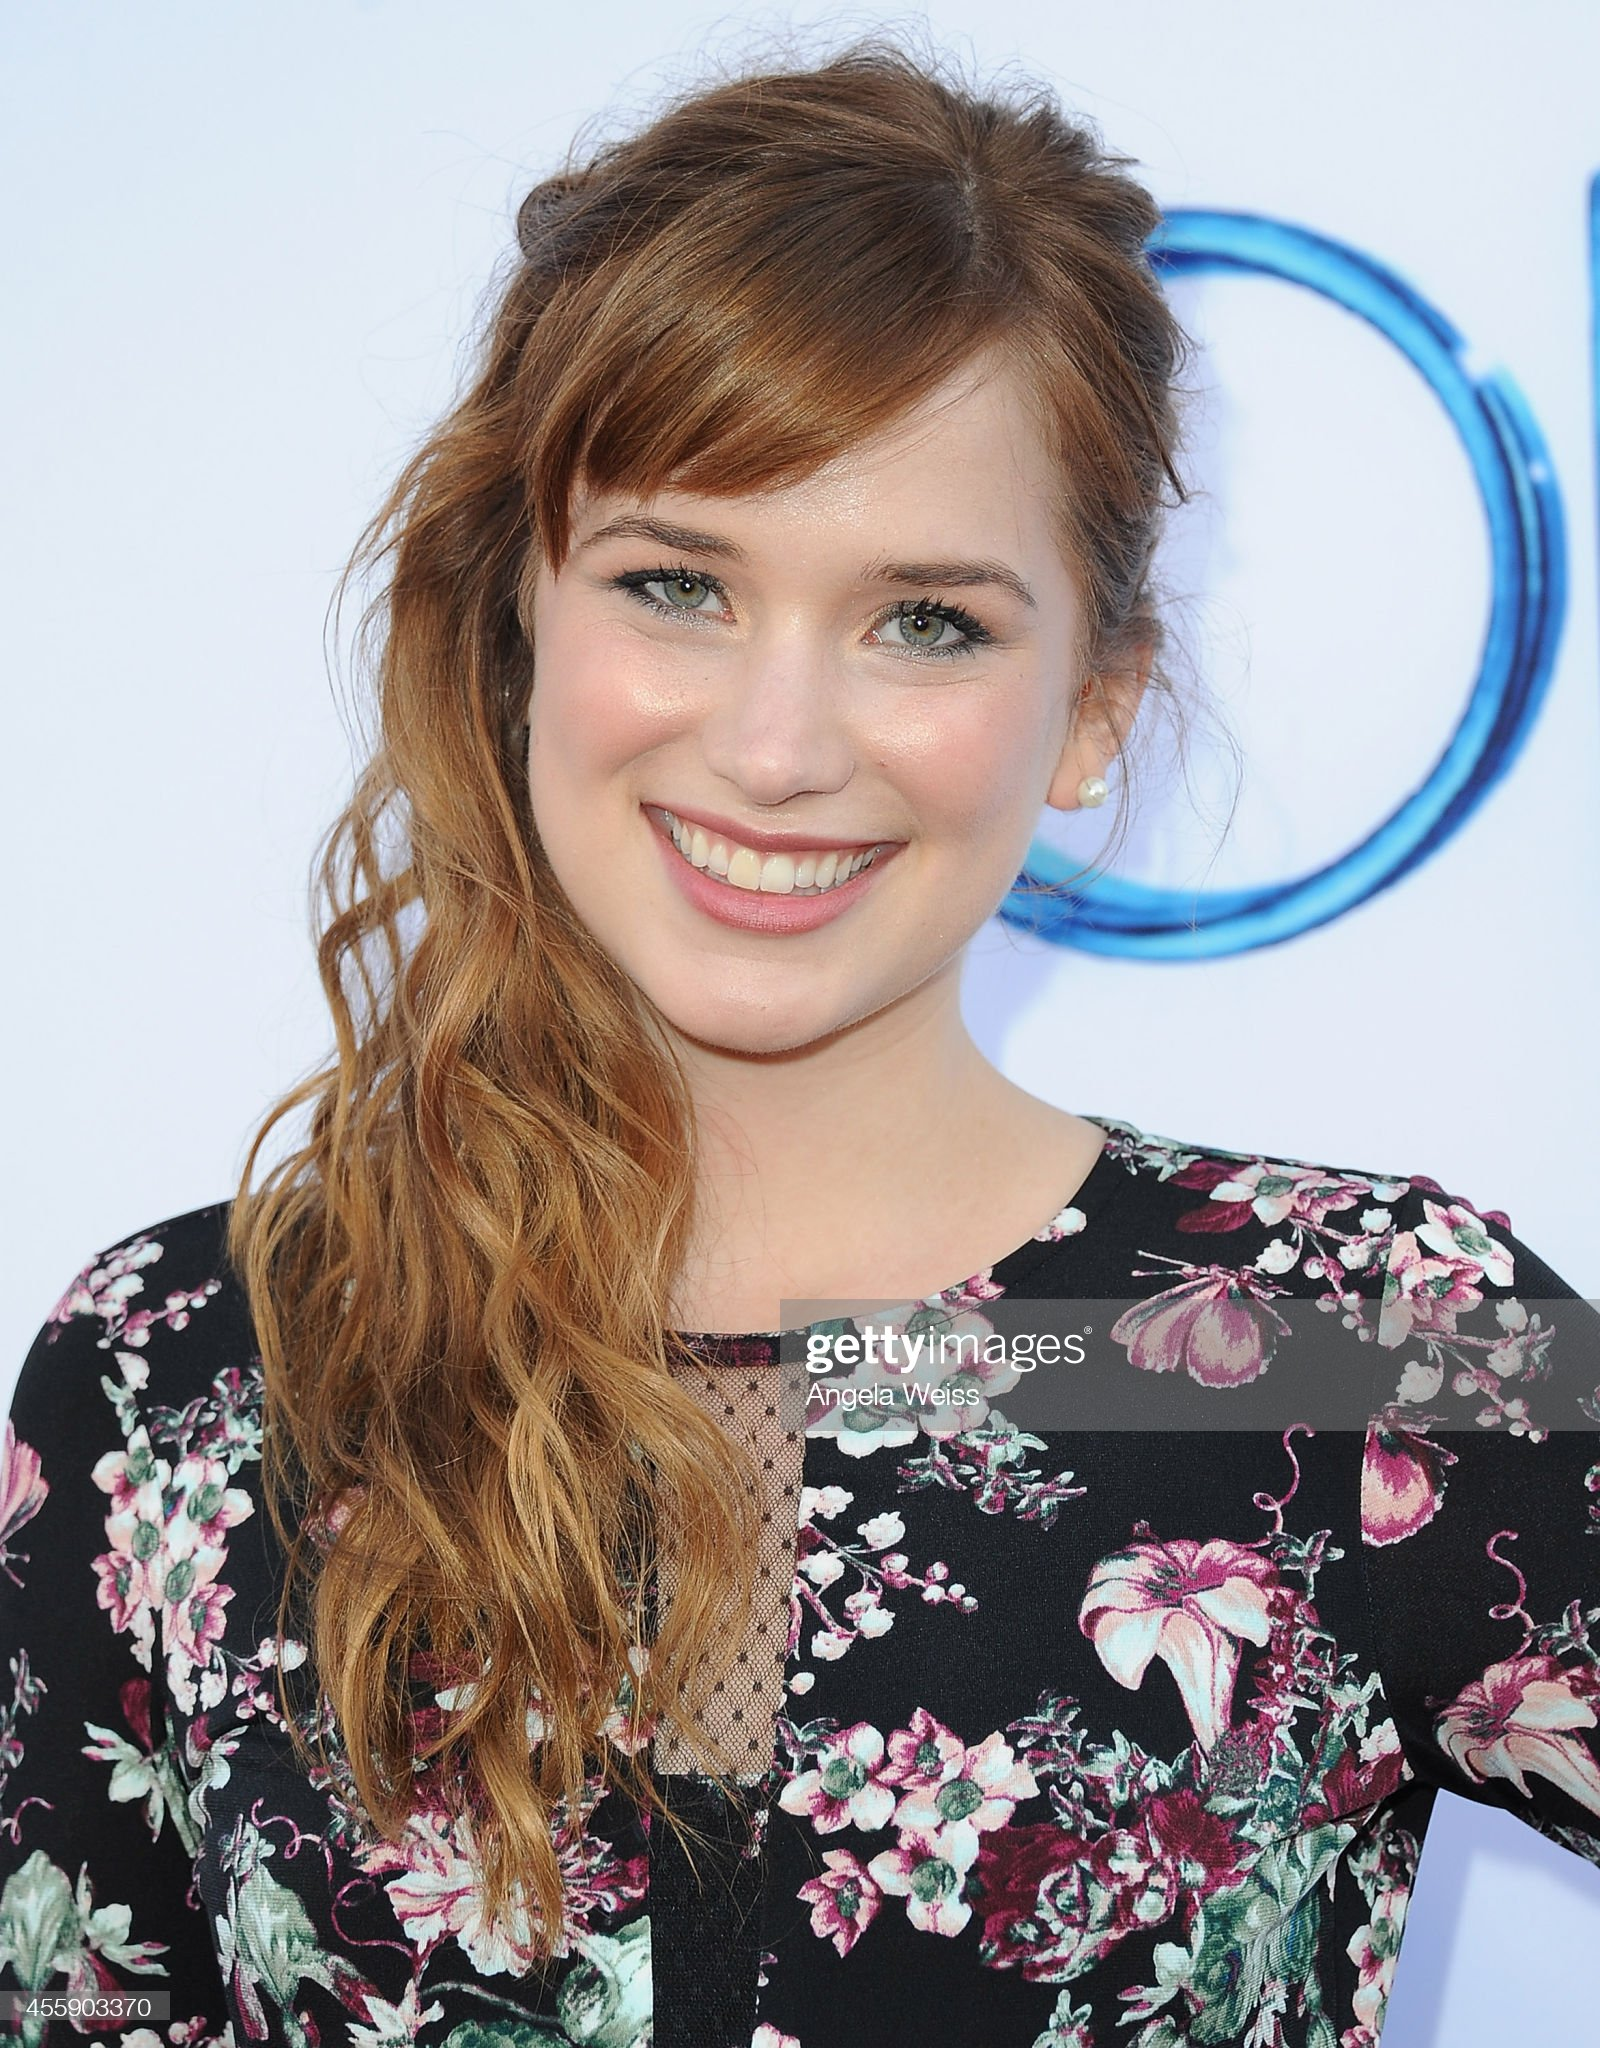 DEBATE sobre guapura de famosos y famosas - Página 41 Actress-elizabeth-lail-attends-abcs-once-upon-a-time-season-4-red-picture-id455903370?s=2048x2048